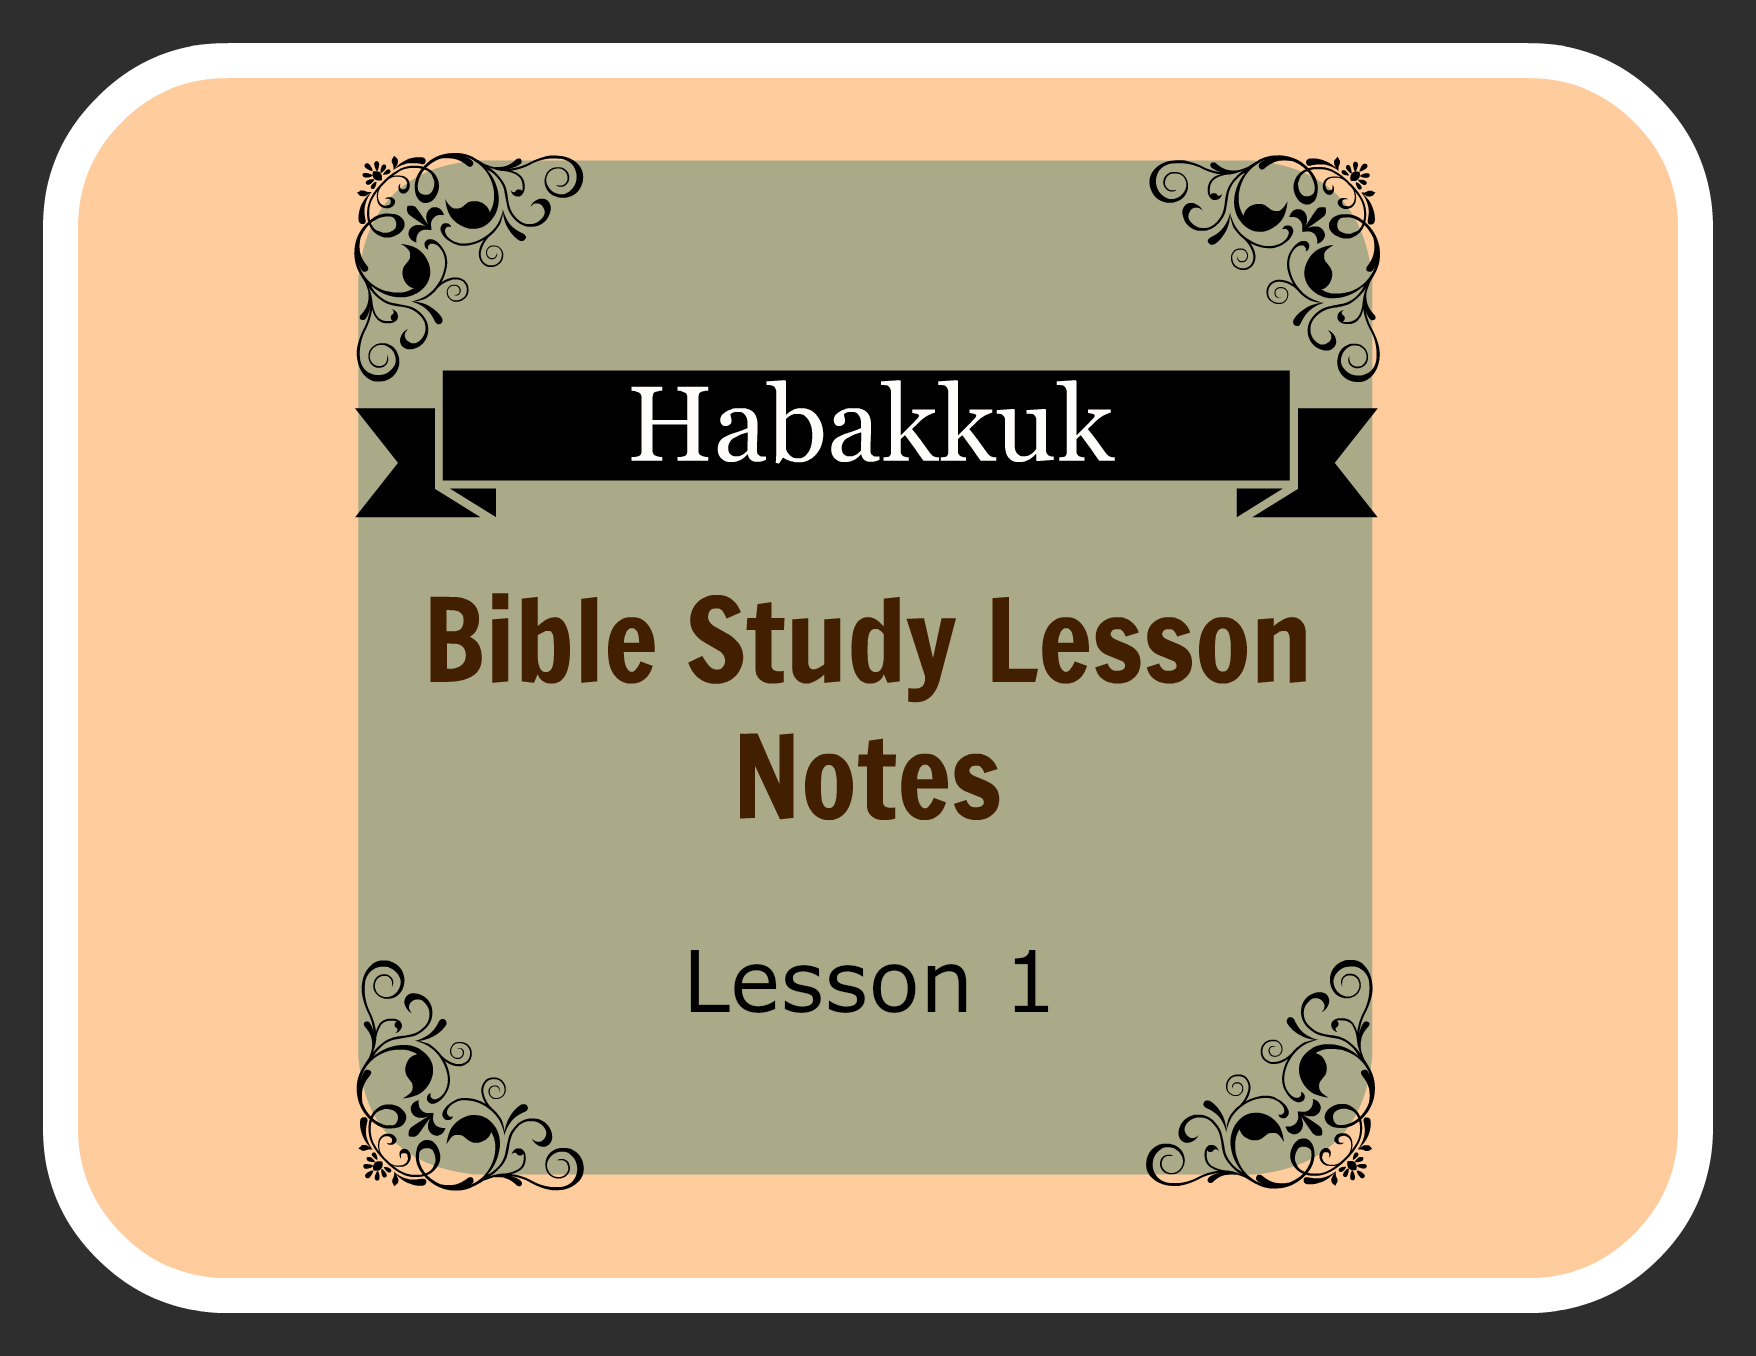 The Book of Habakkuk - lds.org